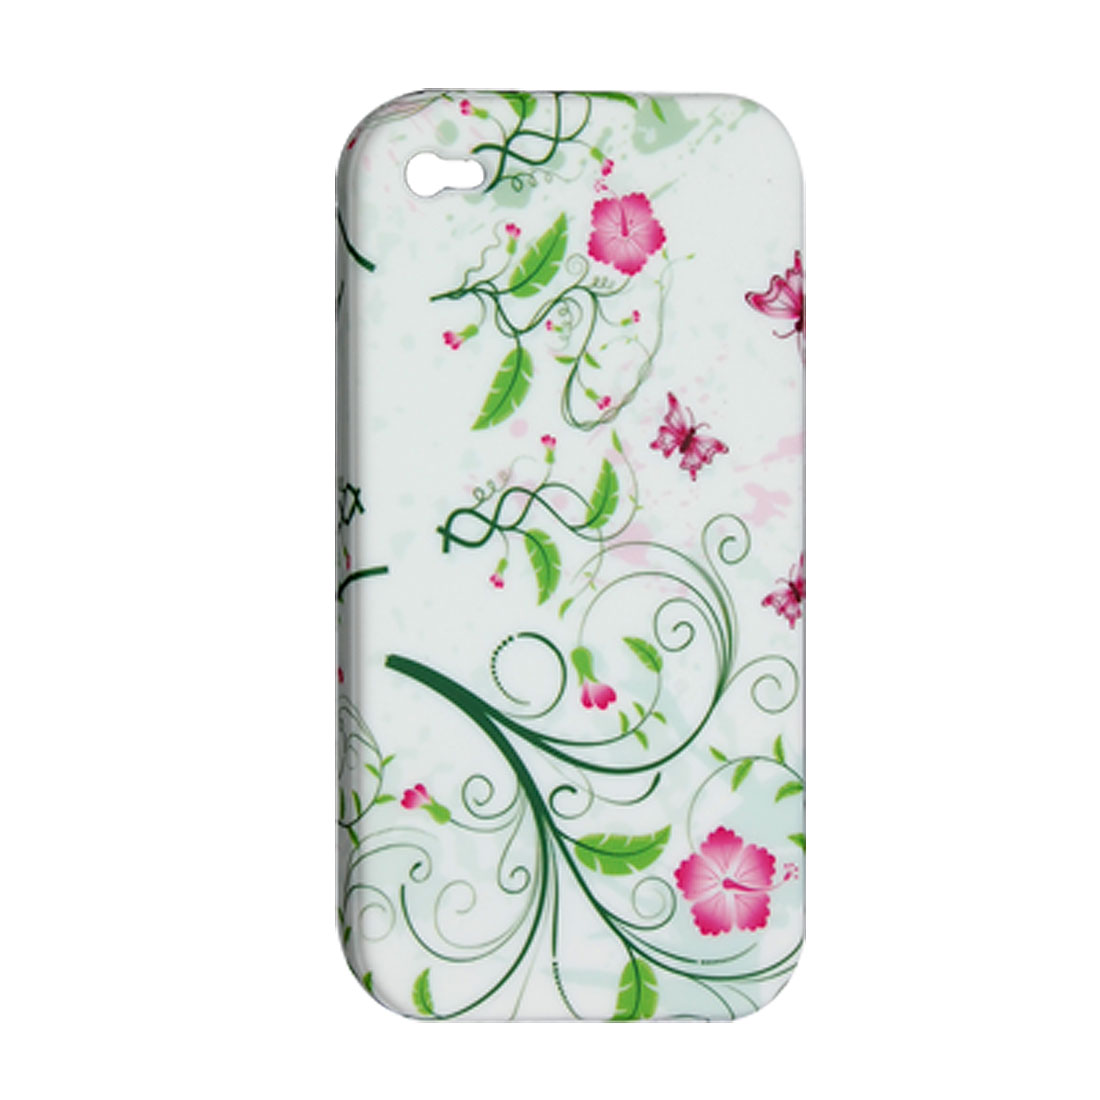 White Flower Style Soft Plastic Case for iPhone 4 4G